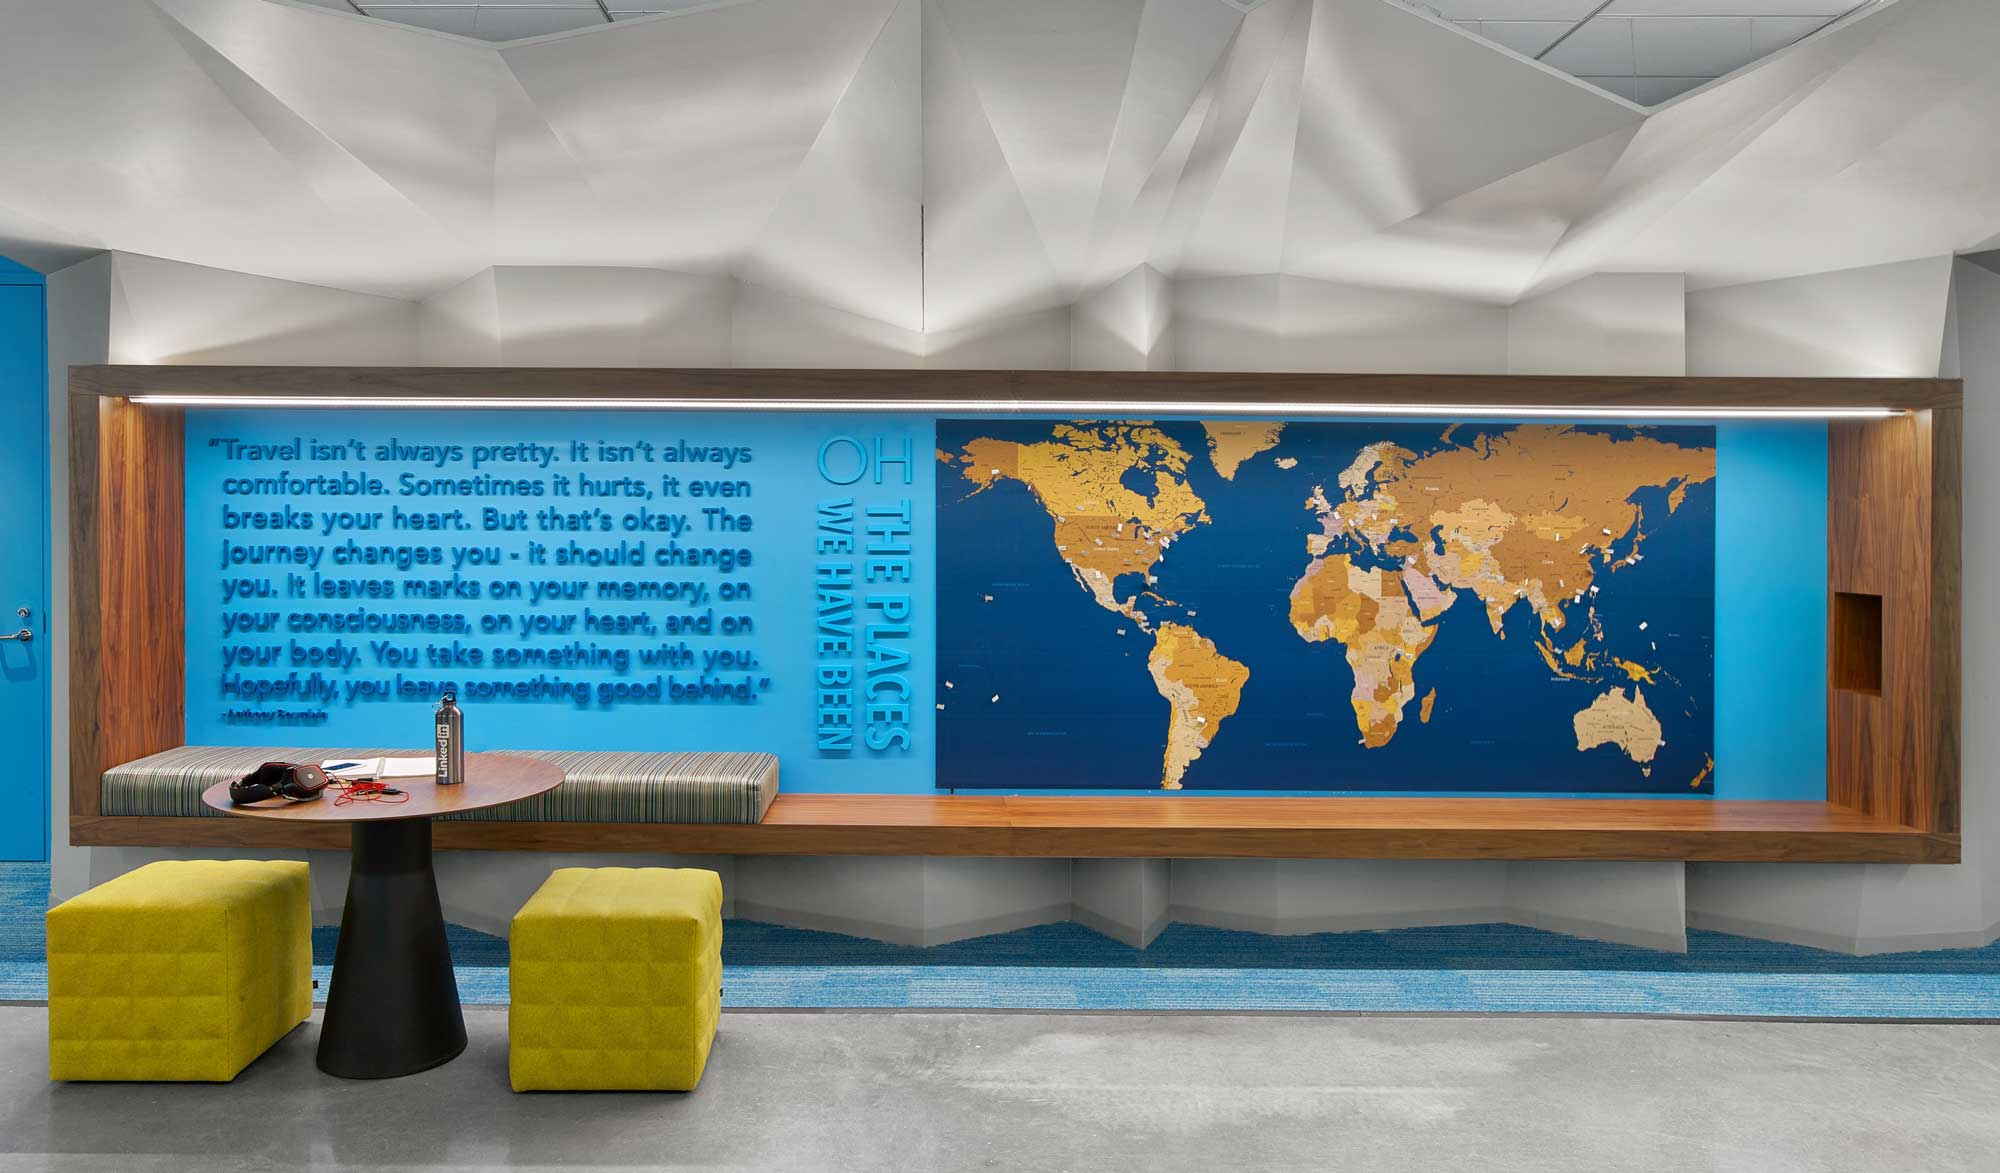 A journey map in LinkedIn's San Francisco office.